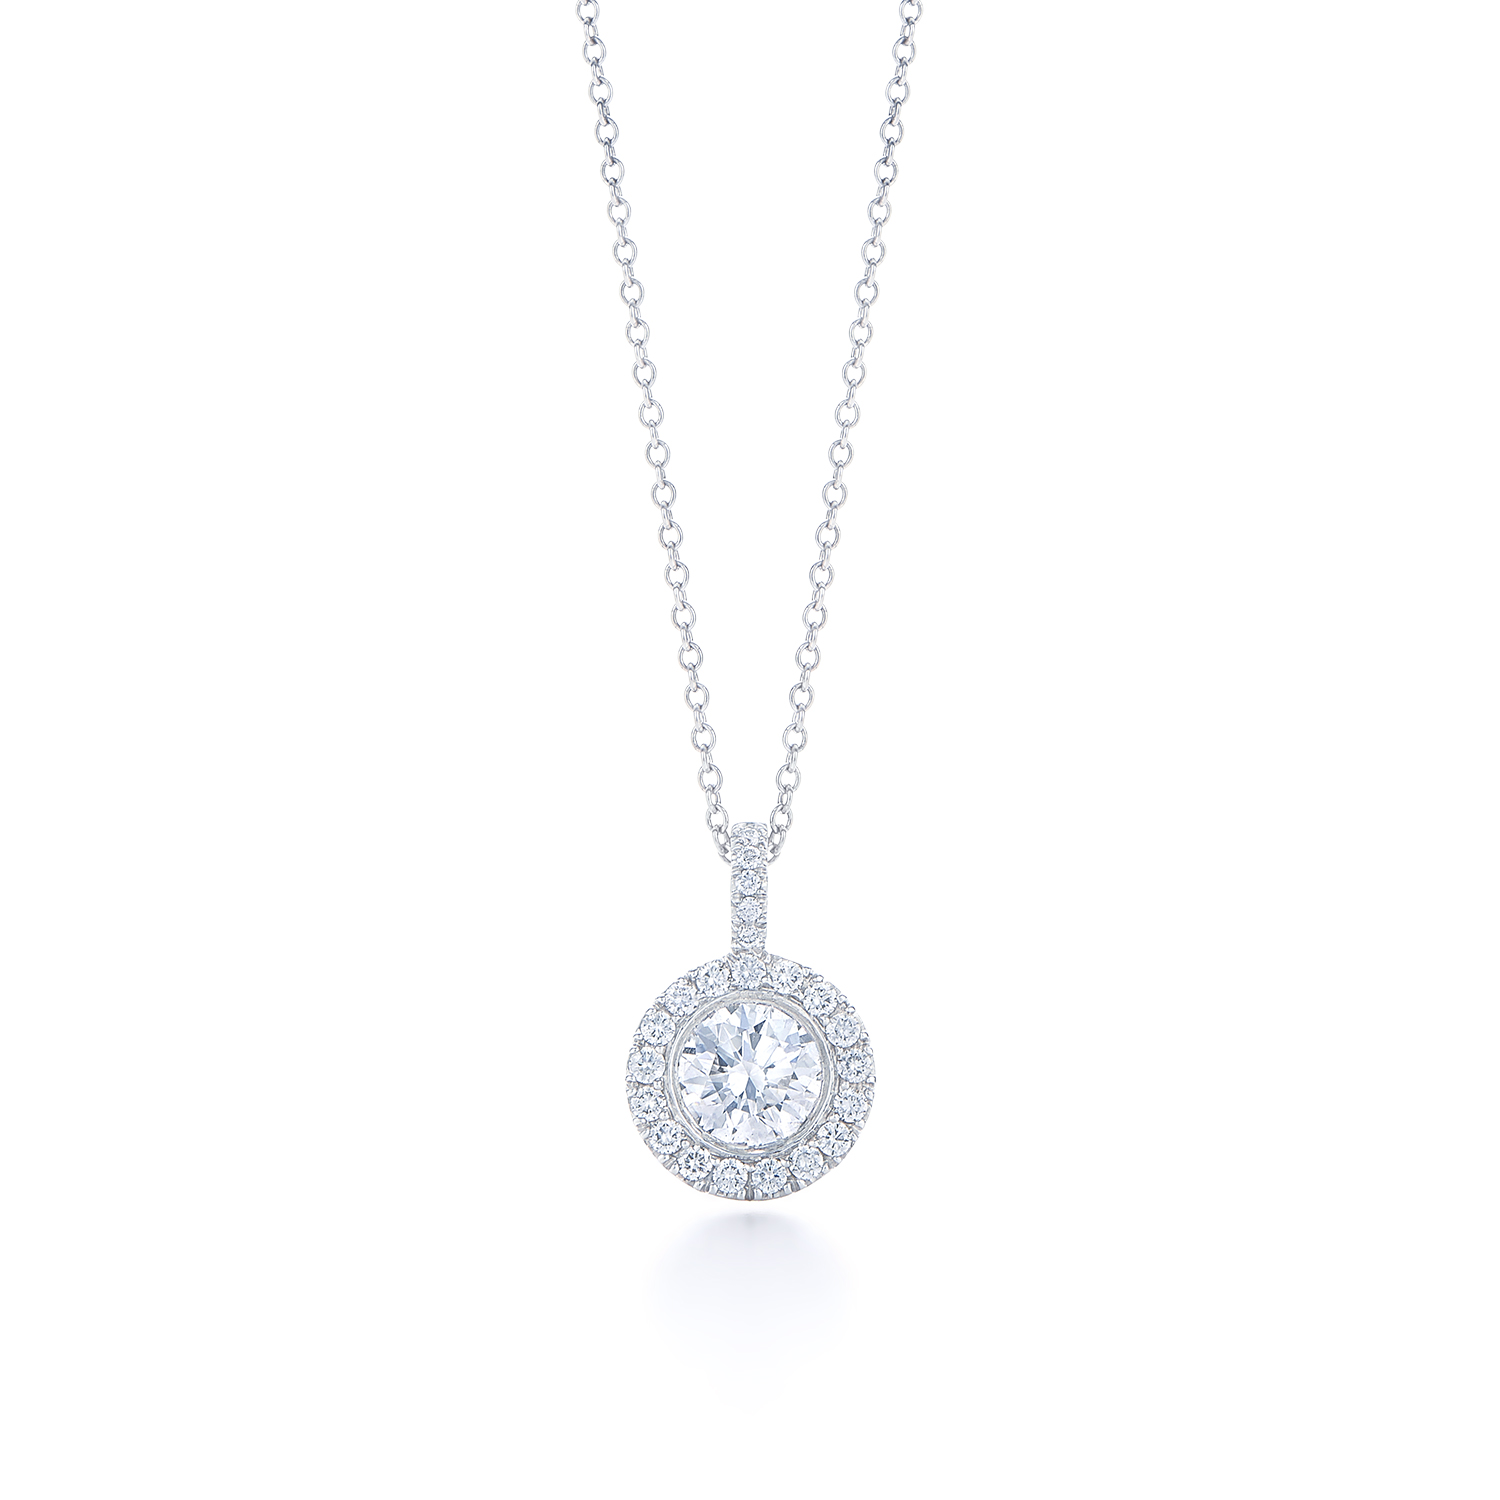 Round diamond solitaire pendant dk gems round diamond solitaire pendant at dk gems online mozeypictures Image collections